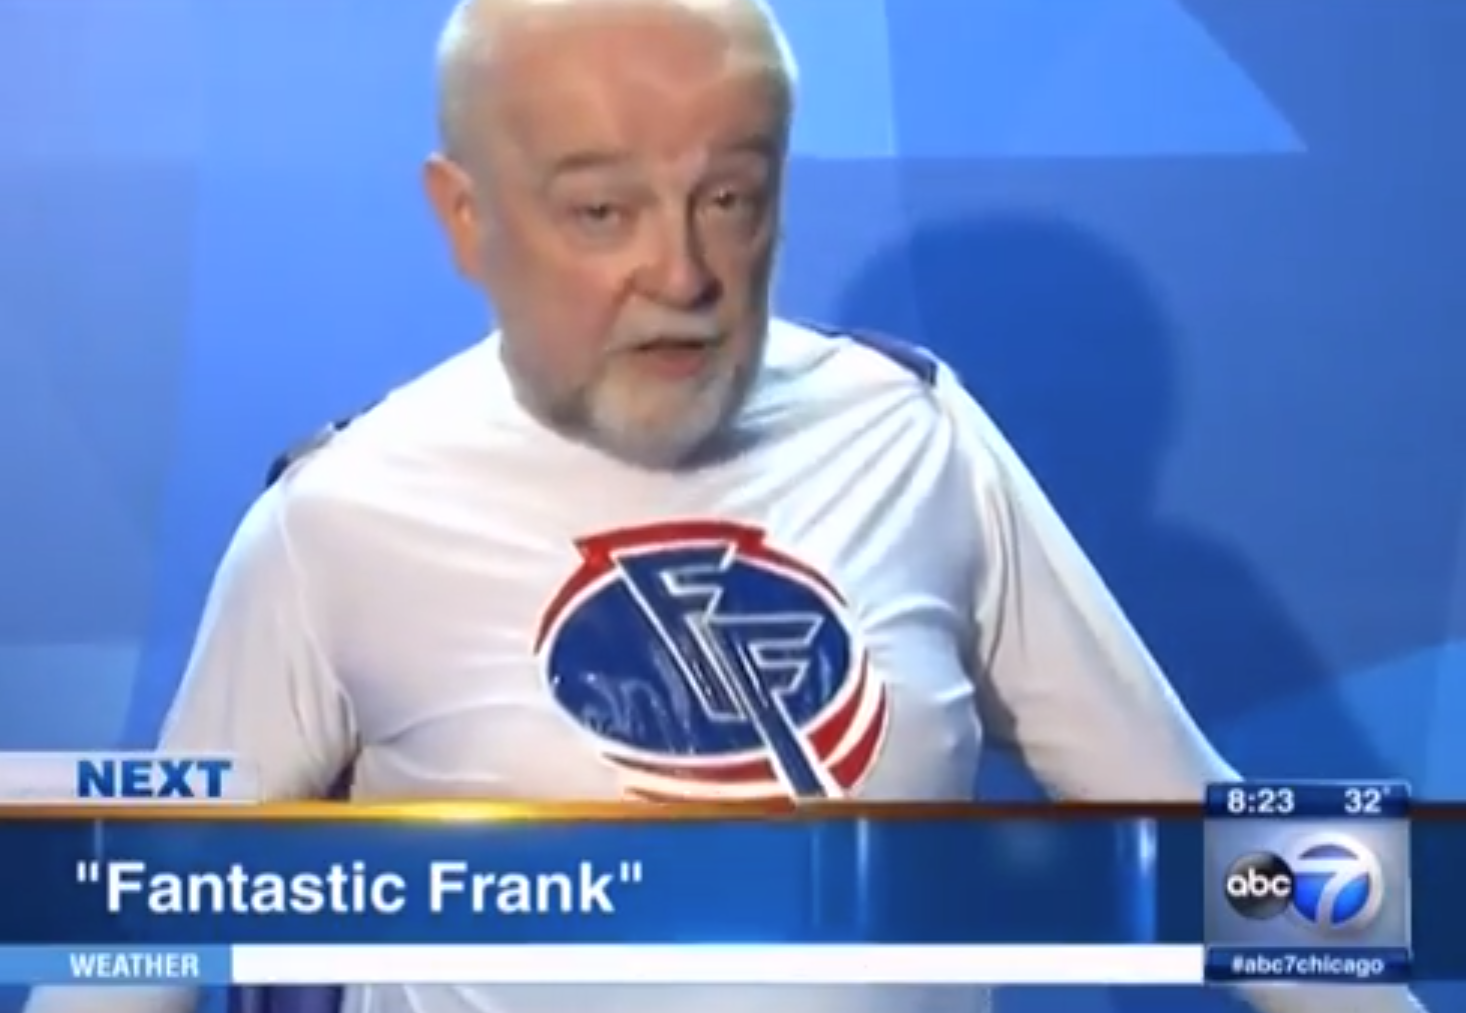 """Fantastic Frank""Johnson ABC Chicago"